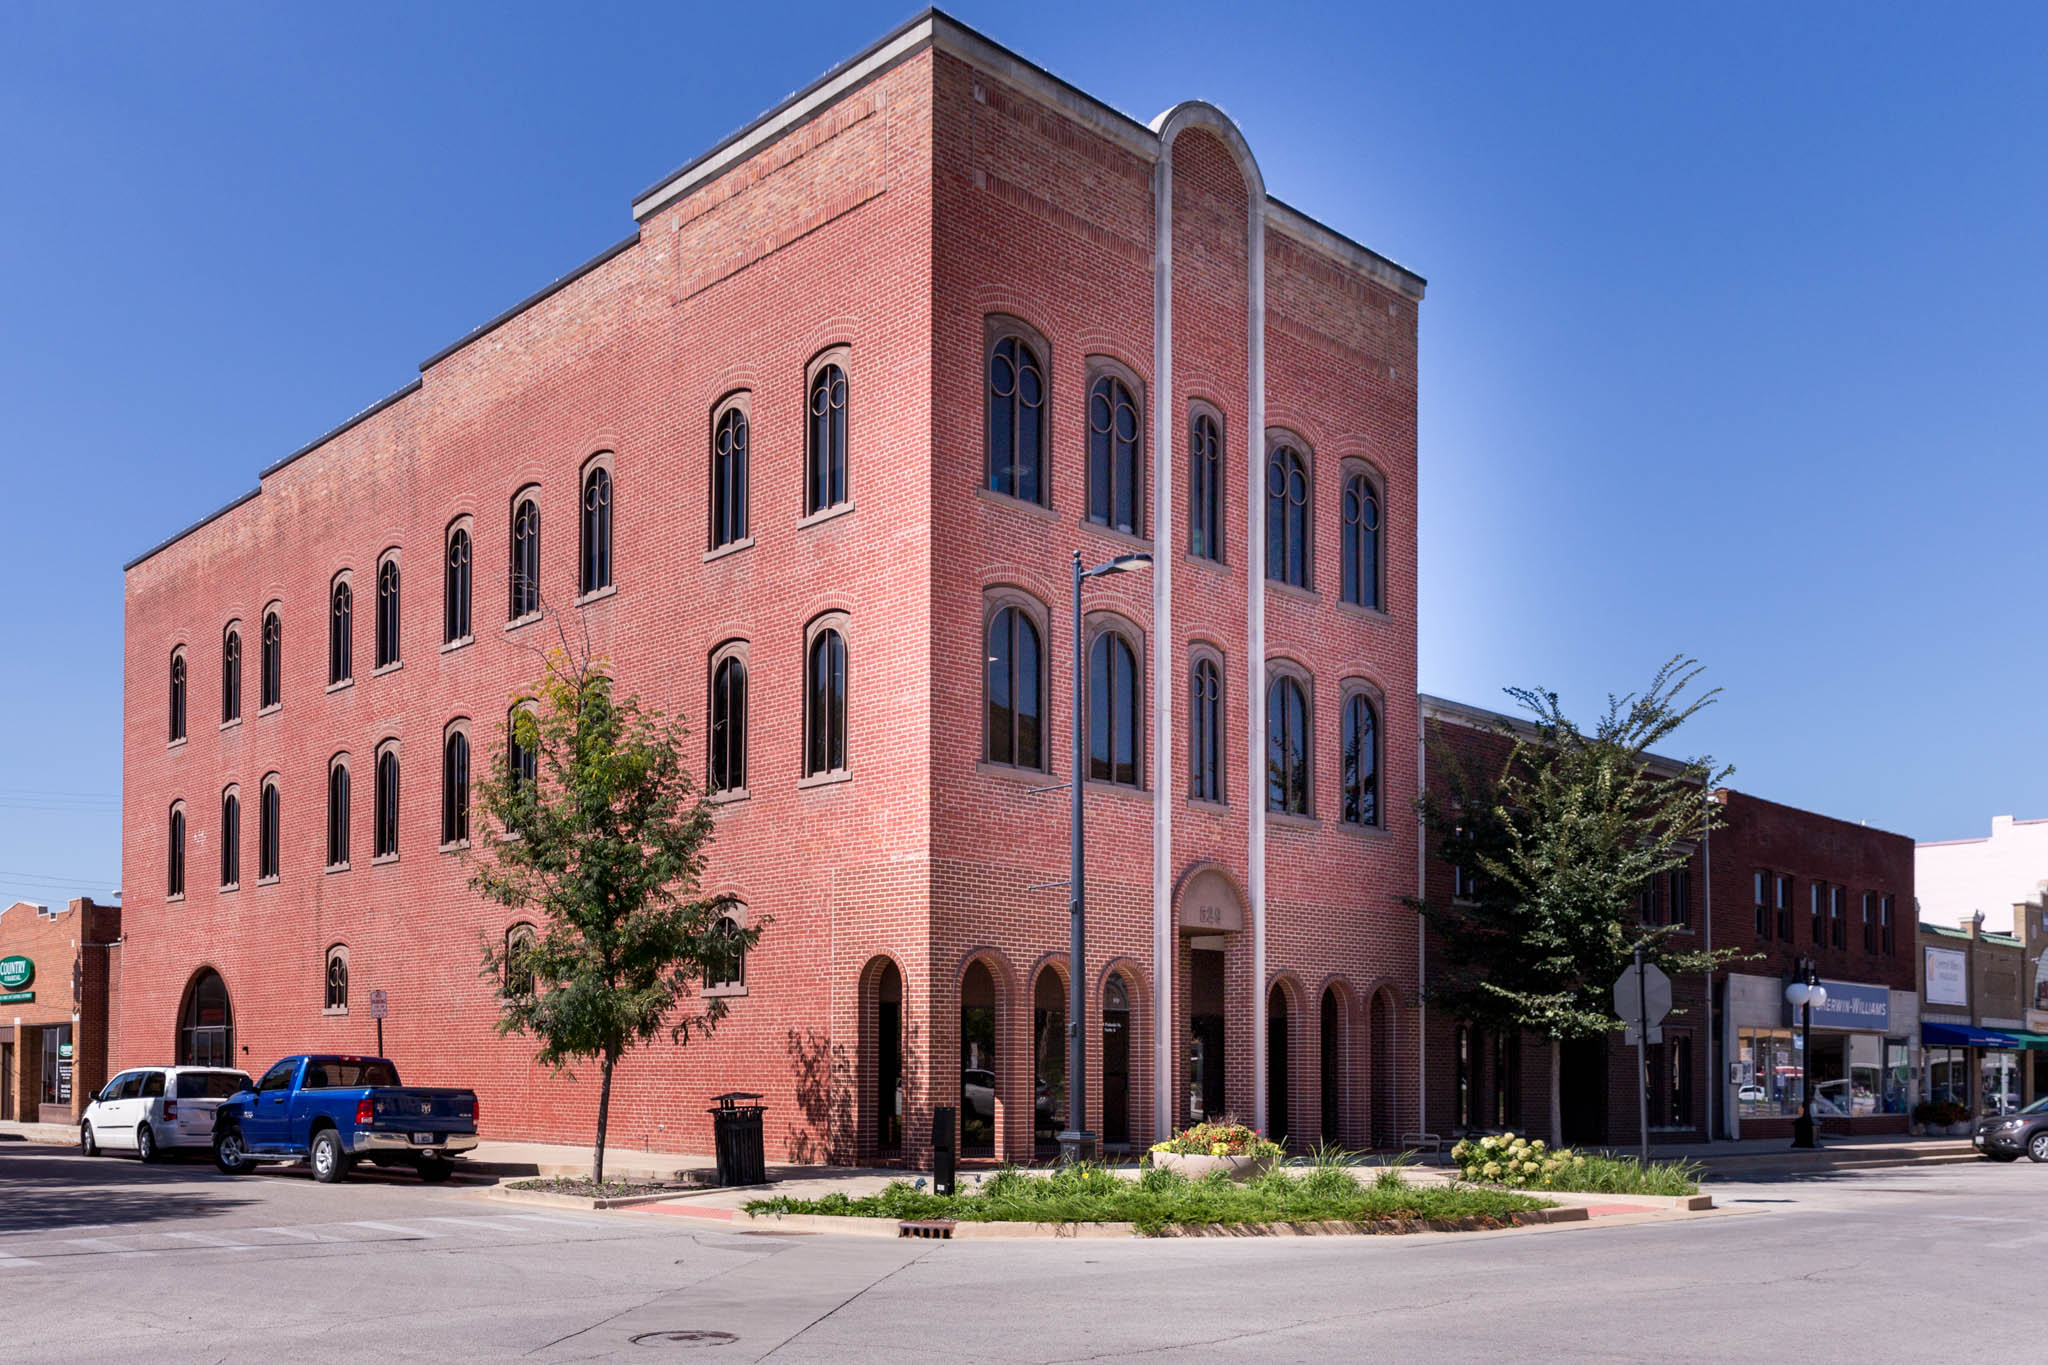 Pacesetter Financial Group's office location in the city of Lincoln located in Central Illinois.